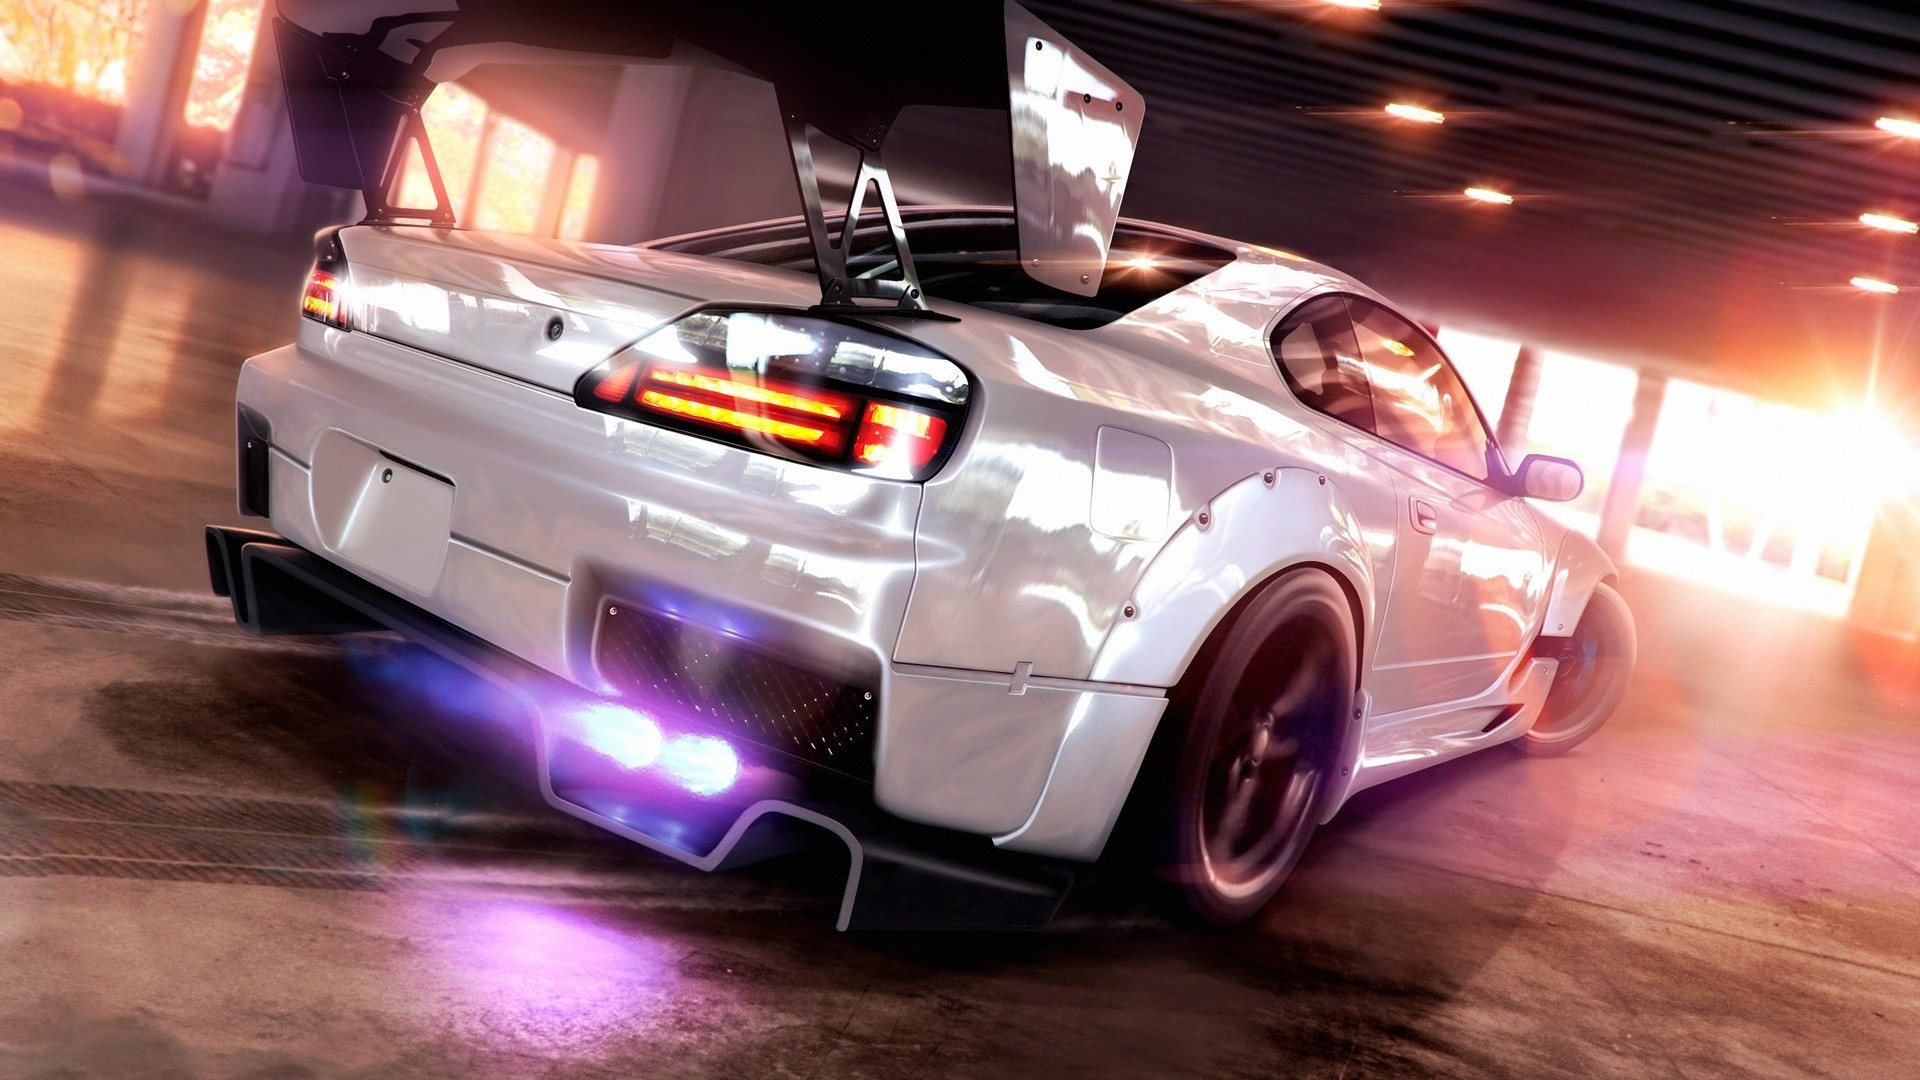 High Resolution Tuning Wallpapers #39493552 Images